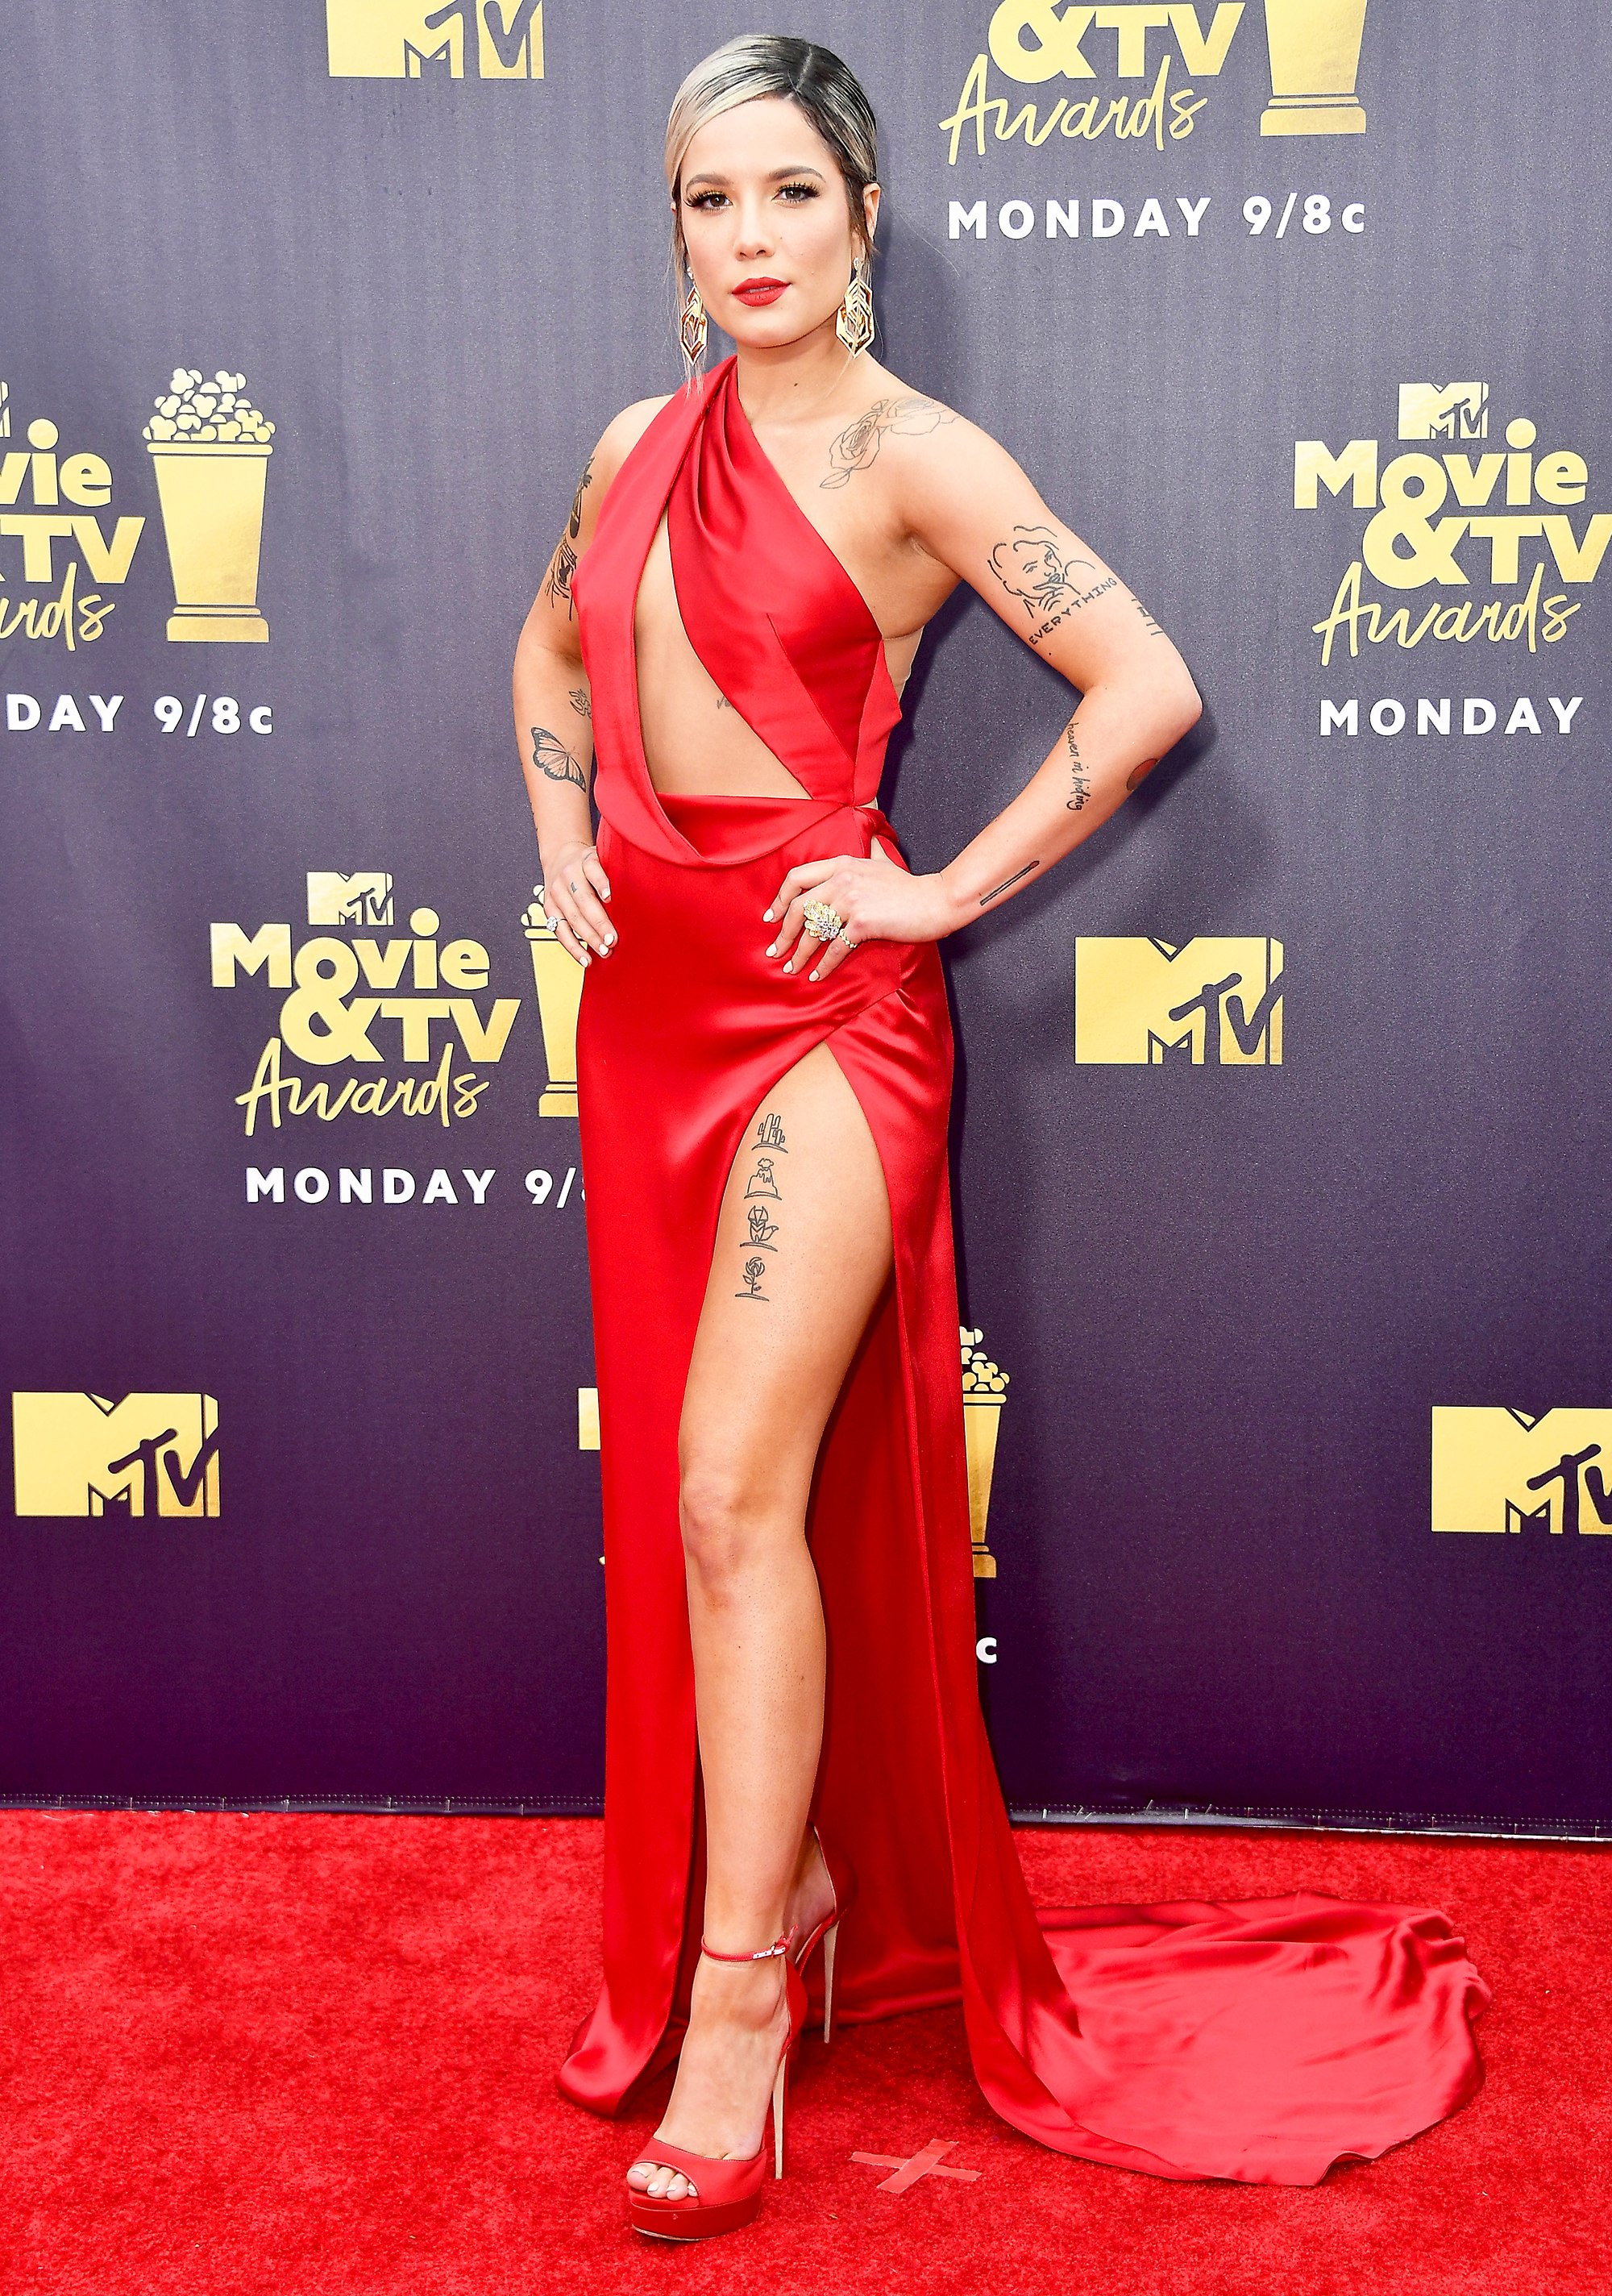 Mtv Movie Tv Awards 2018 Red Carpet Fashion What The Stars Wore